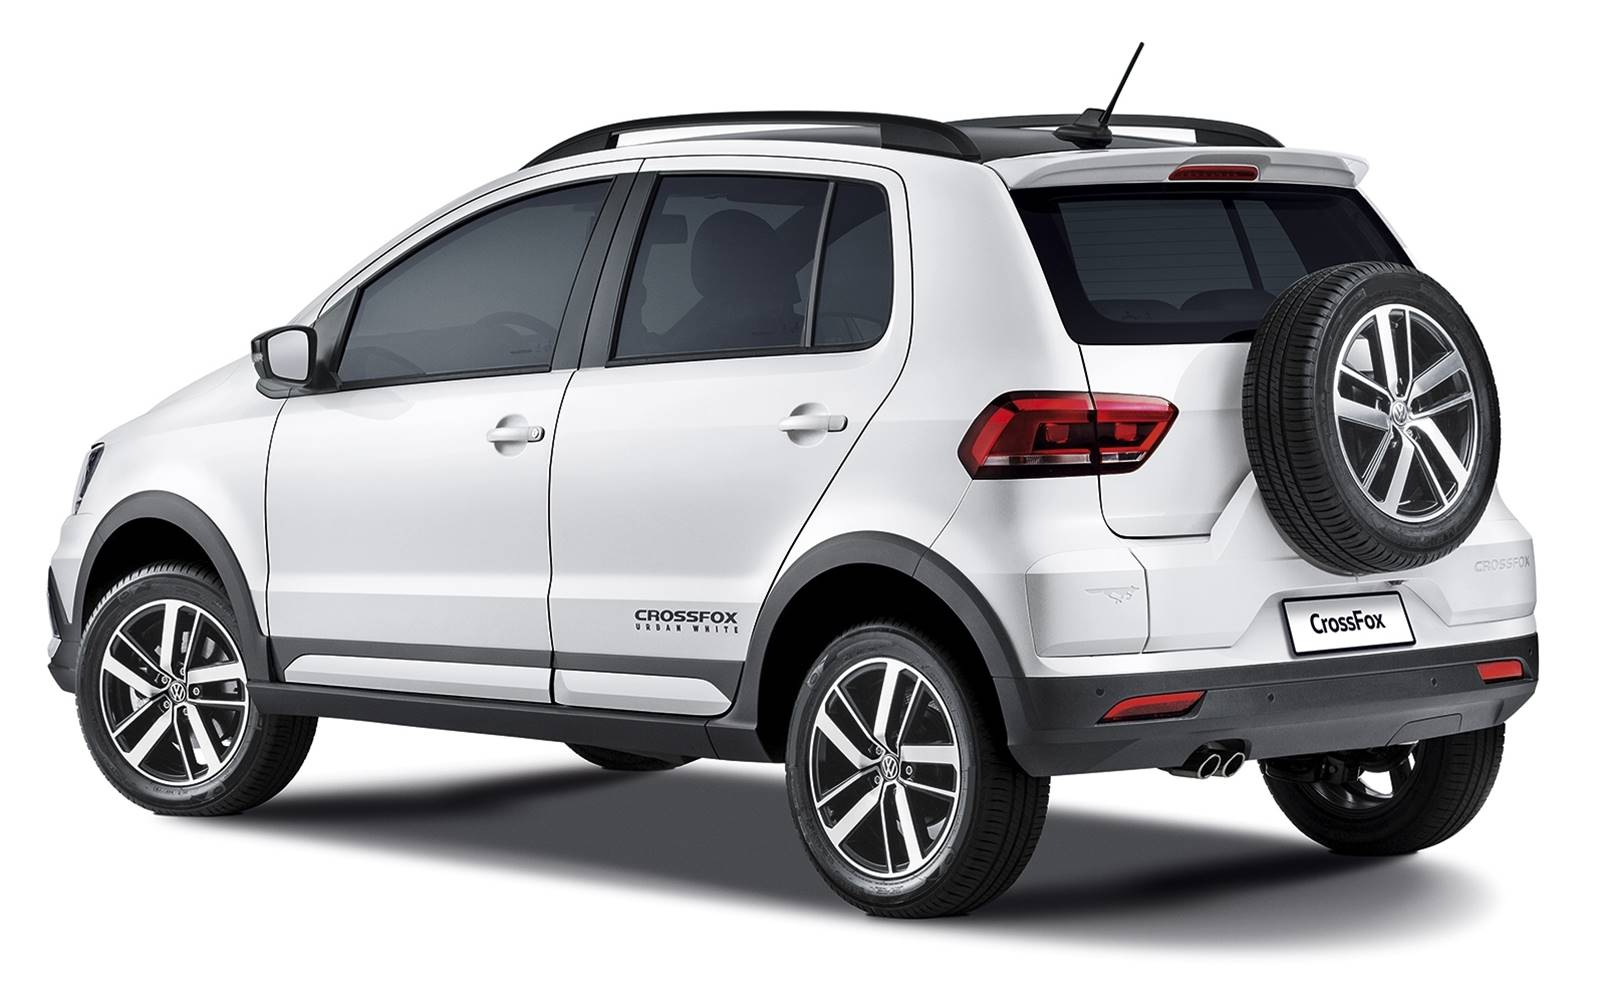 volkswagen crossfox 2017 urban white fotos e detalhes car blog br. Black Bedroom Furniture Sets. Home Design Ideas